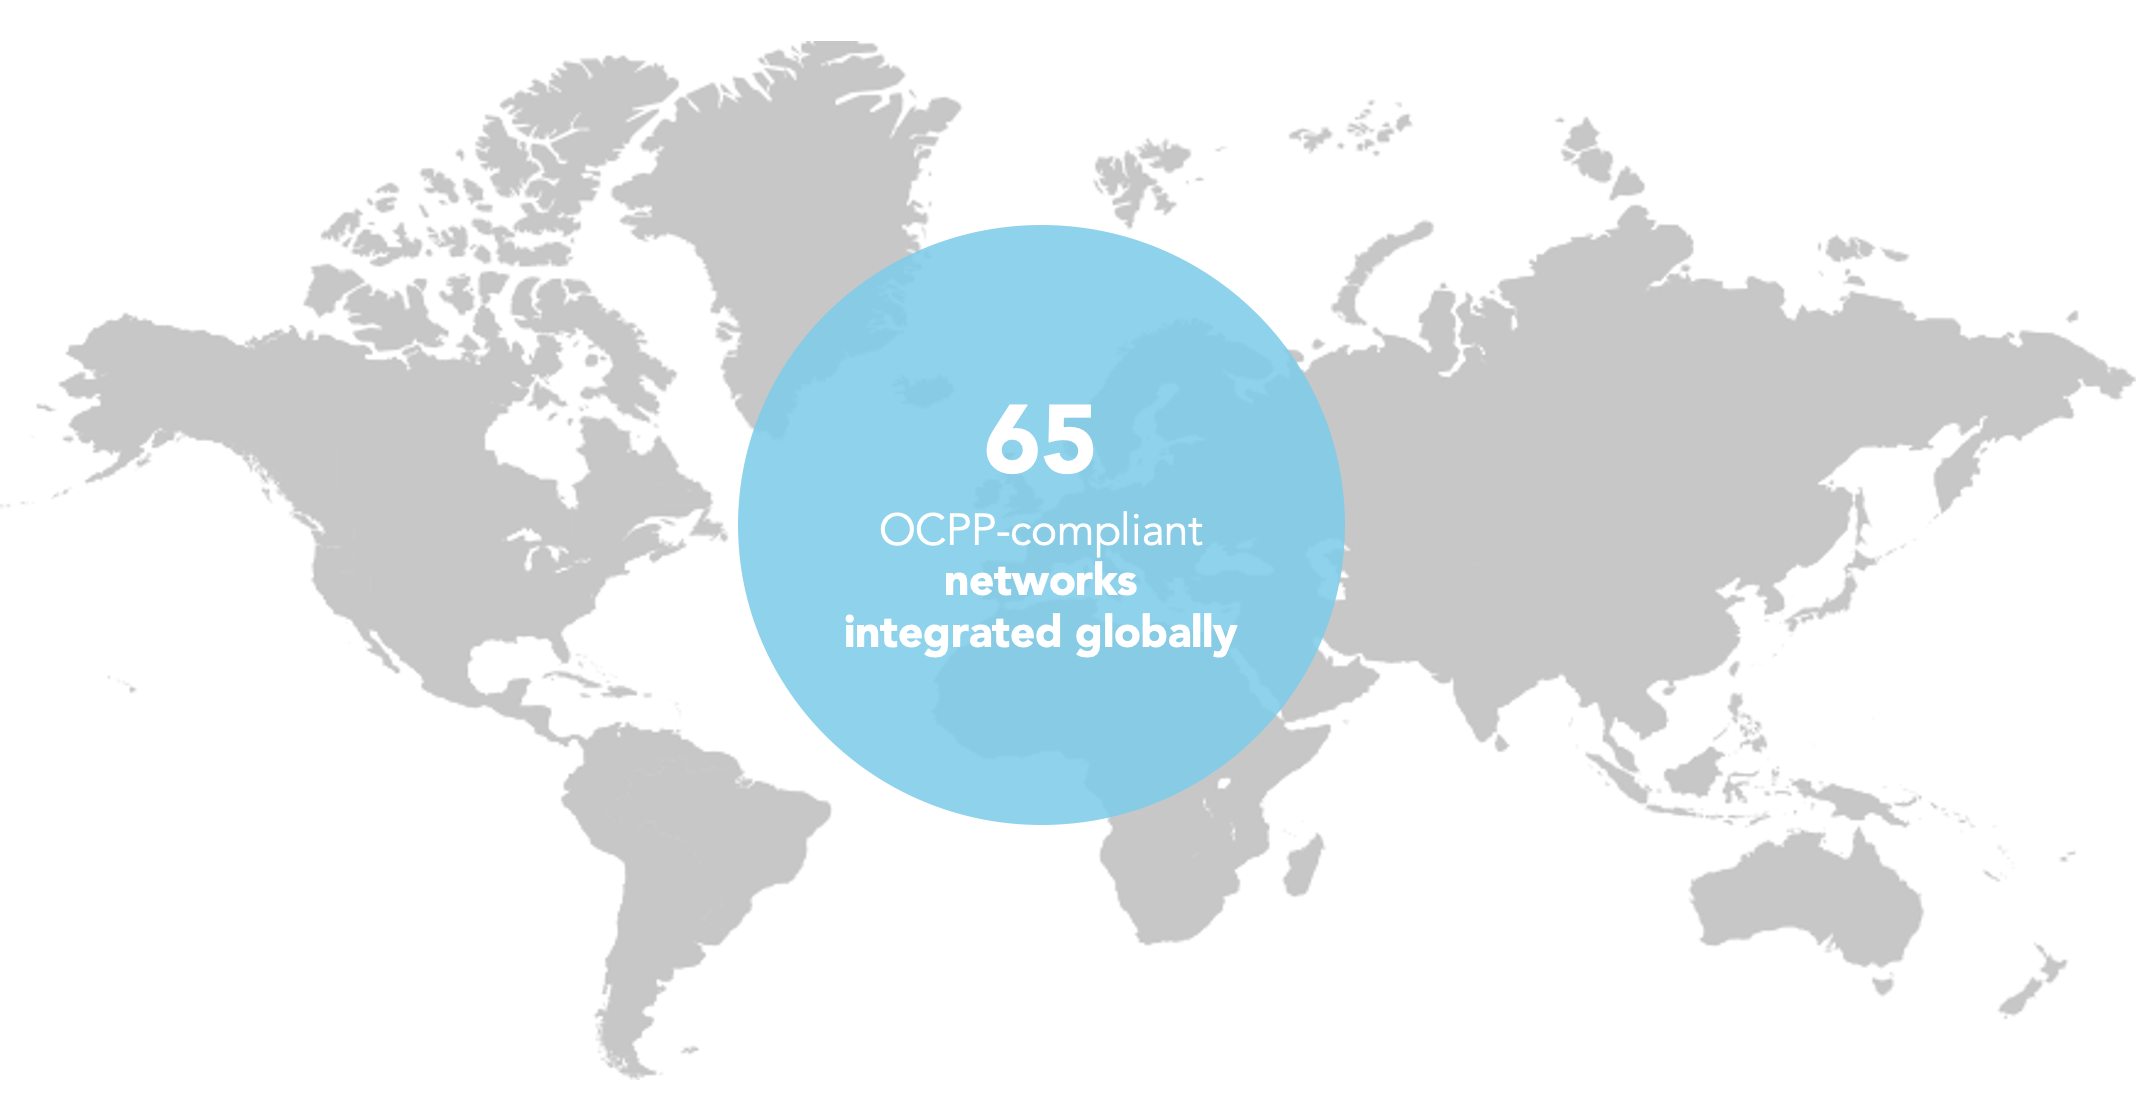 A global map showing that EVBox has 65 OCPP-compliant networks integrated globally